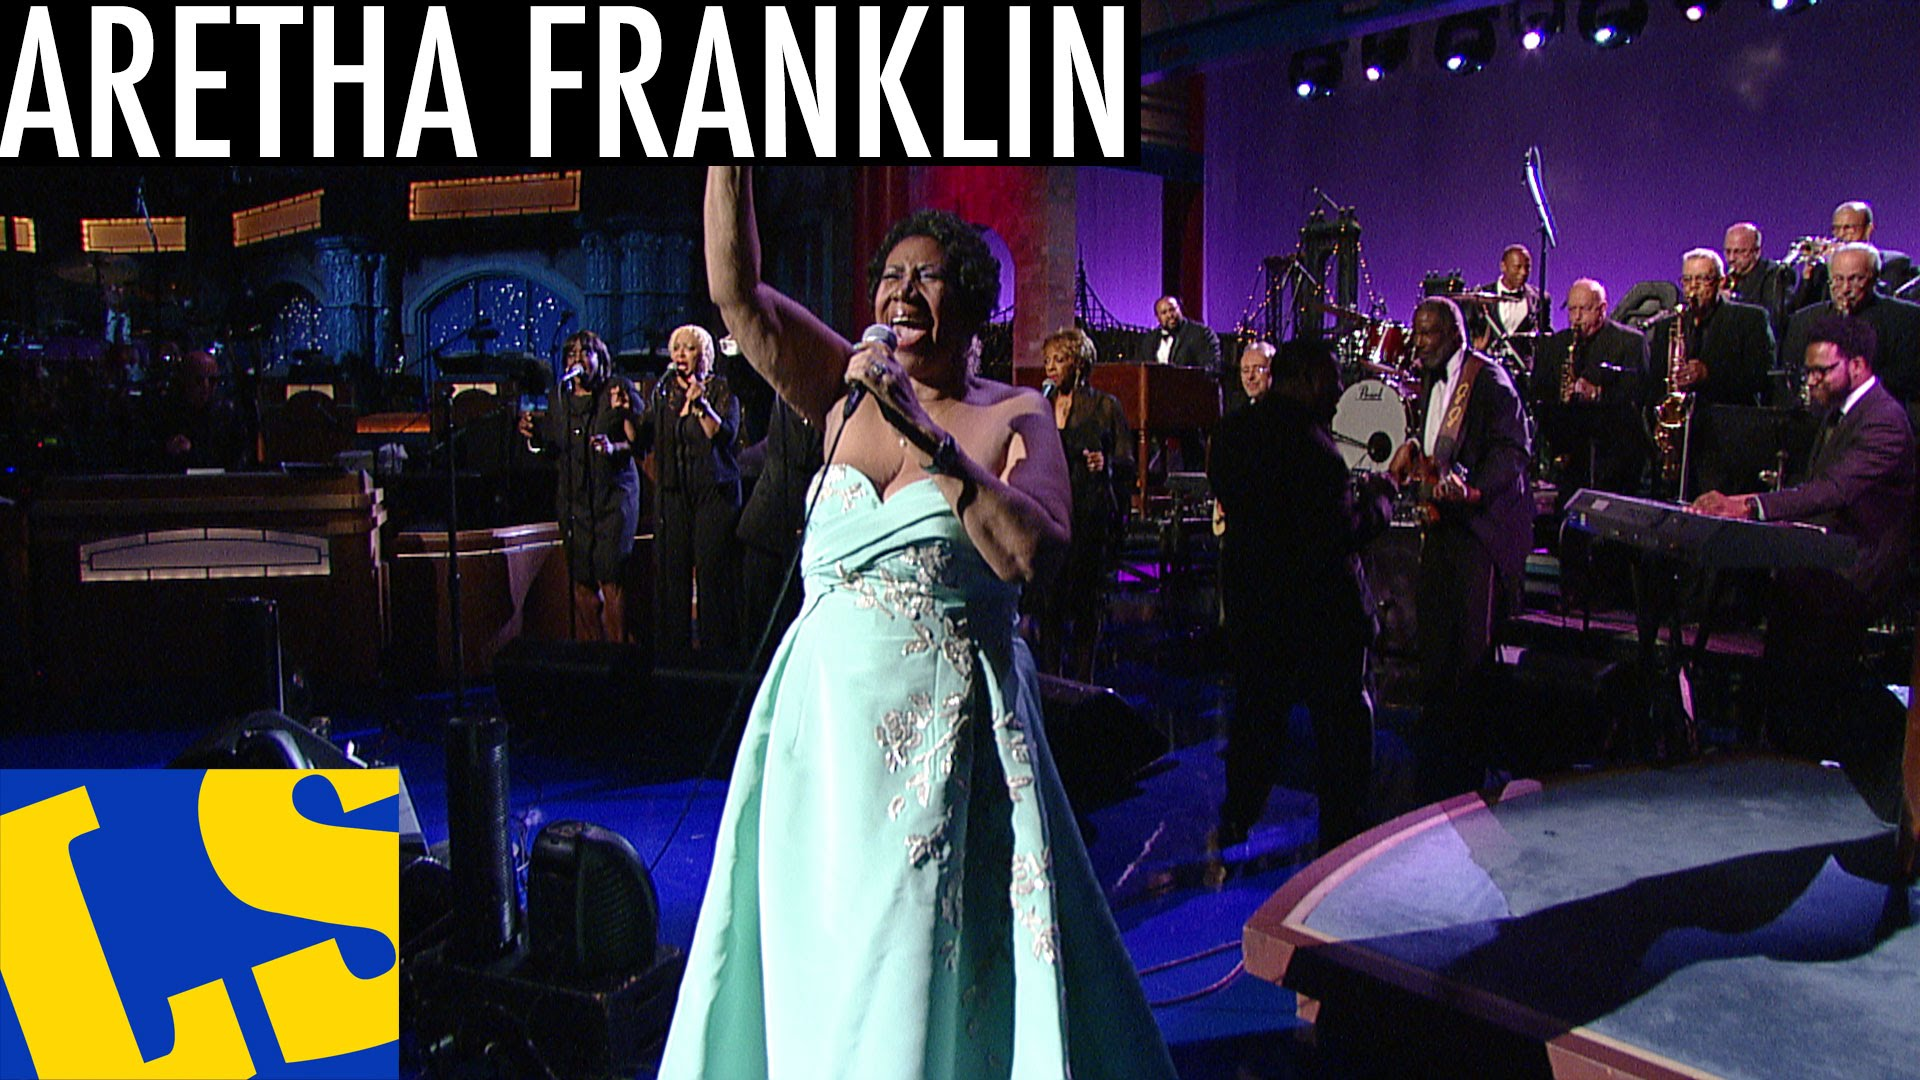 Aretha Franklin schedules Oakland concert, first Bay Area show in 30 years